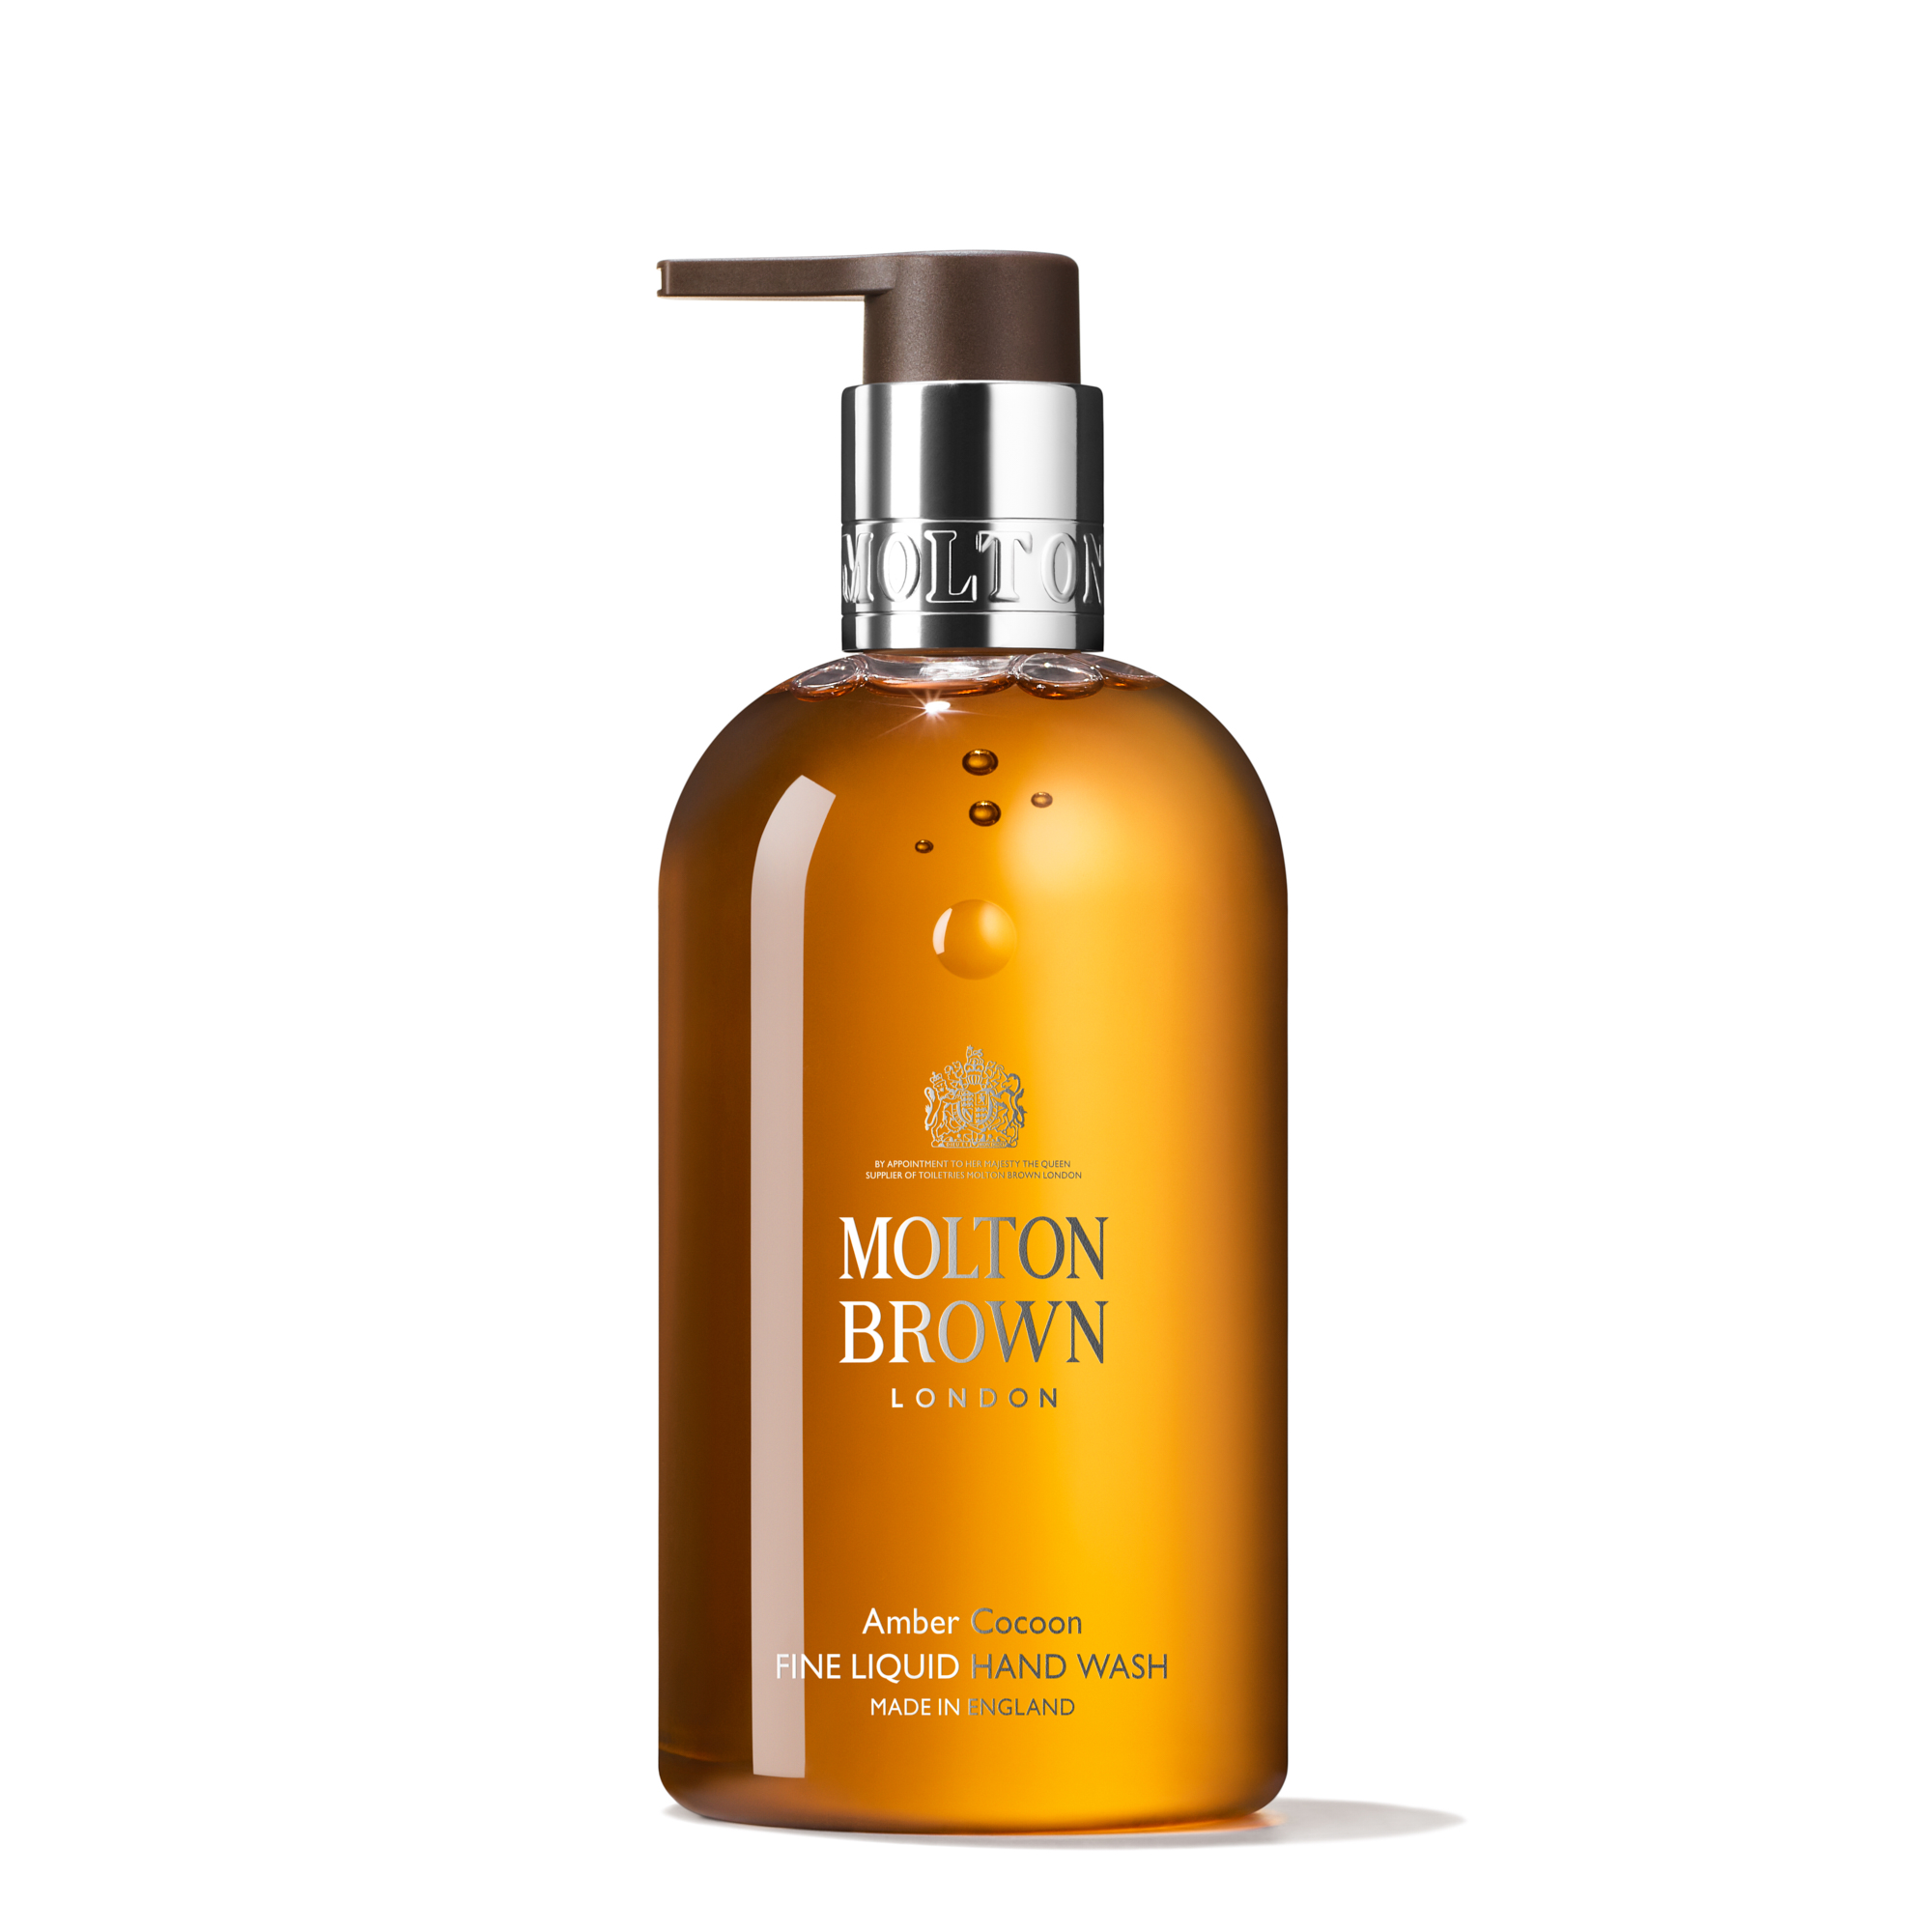 An image of Molton Brown Amber Cocoon Fine Liquid Hand Wash 300ml - AMBER COCOON